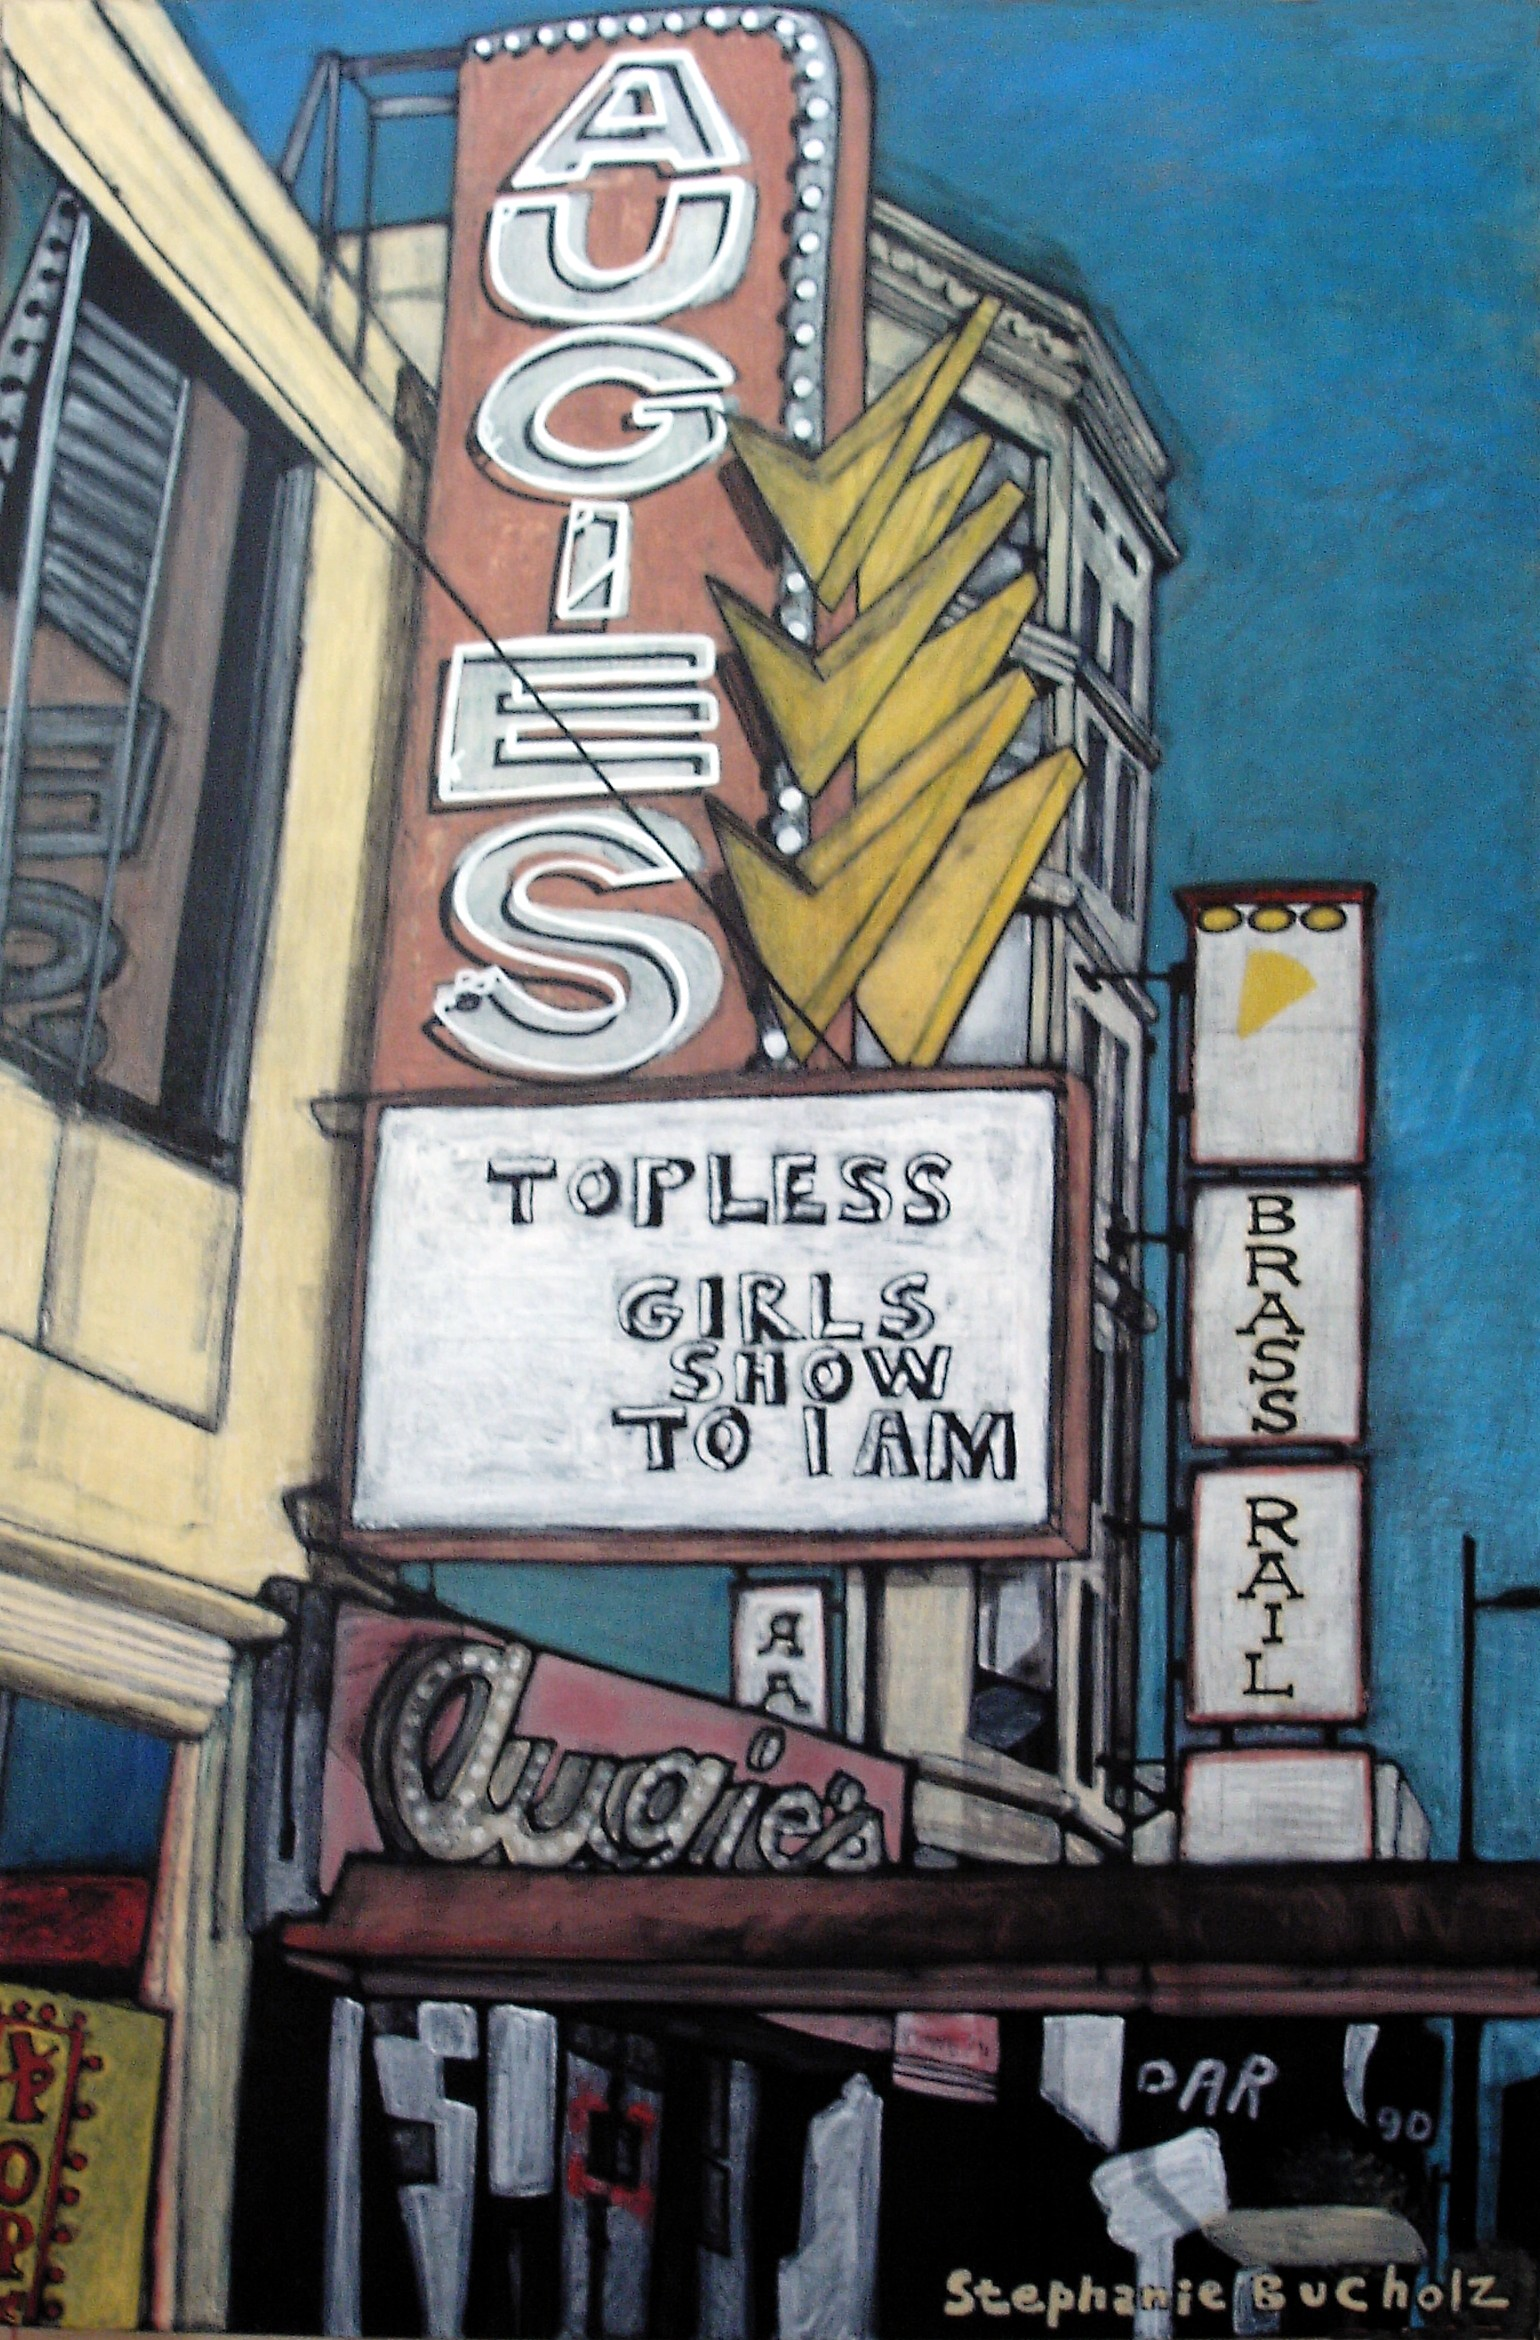 Augie's, 36 x 24, acrylic and marker on canvas